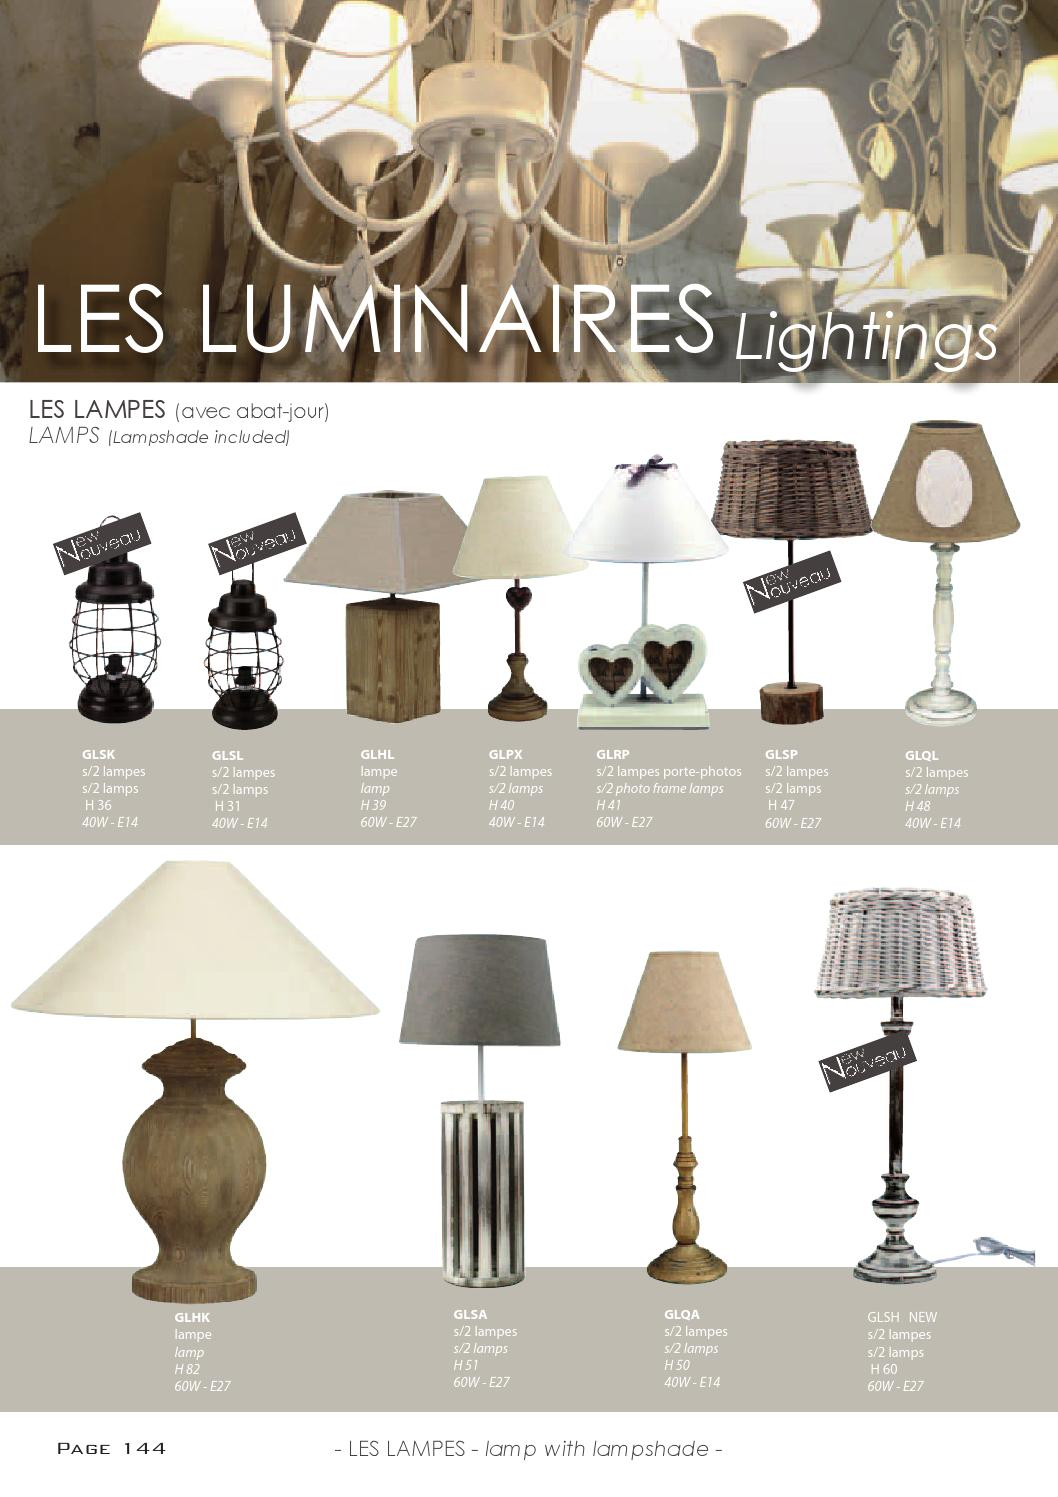 Lampe 40w Country Corner 2014 Decorations By Interiér De Lart Issuu